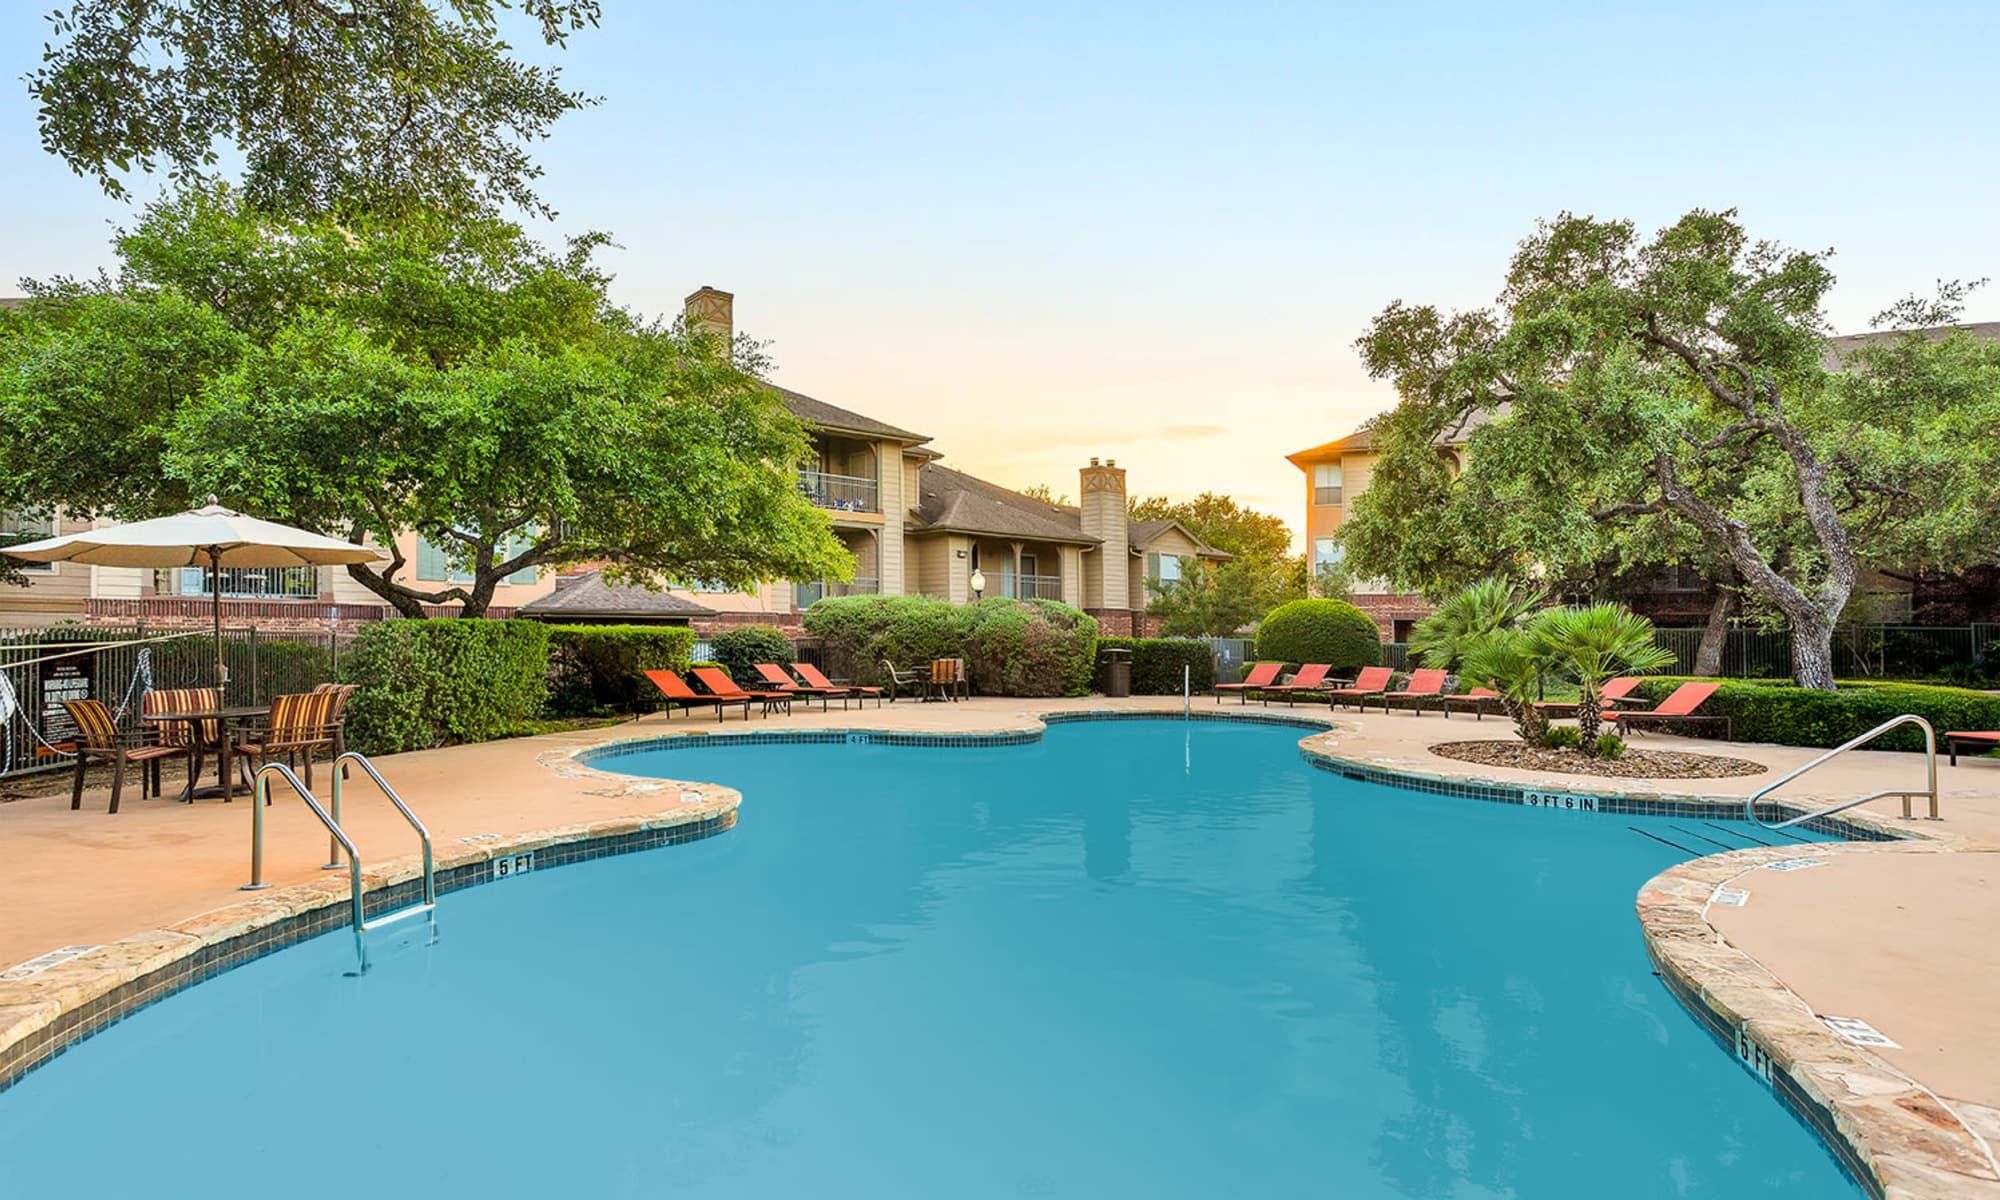 Apartments at The Estates of Northwoods in San Antonio, Texas